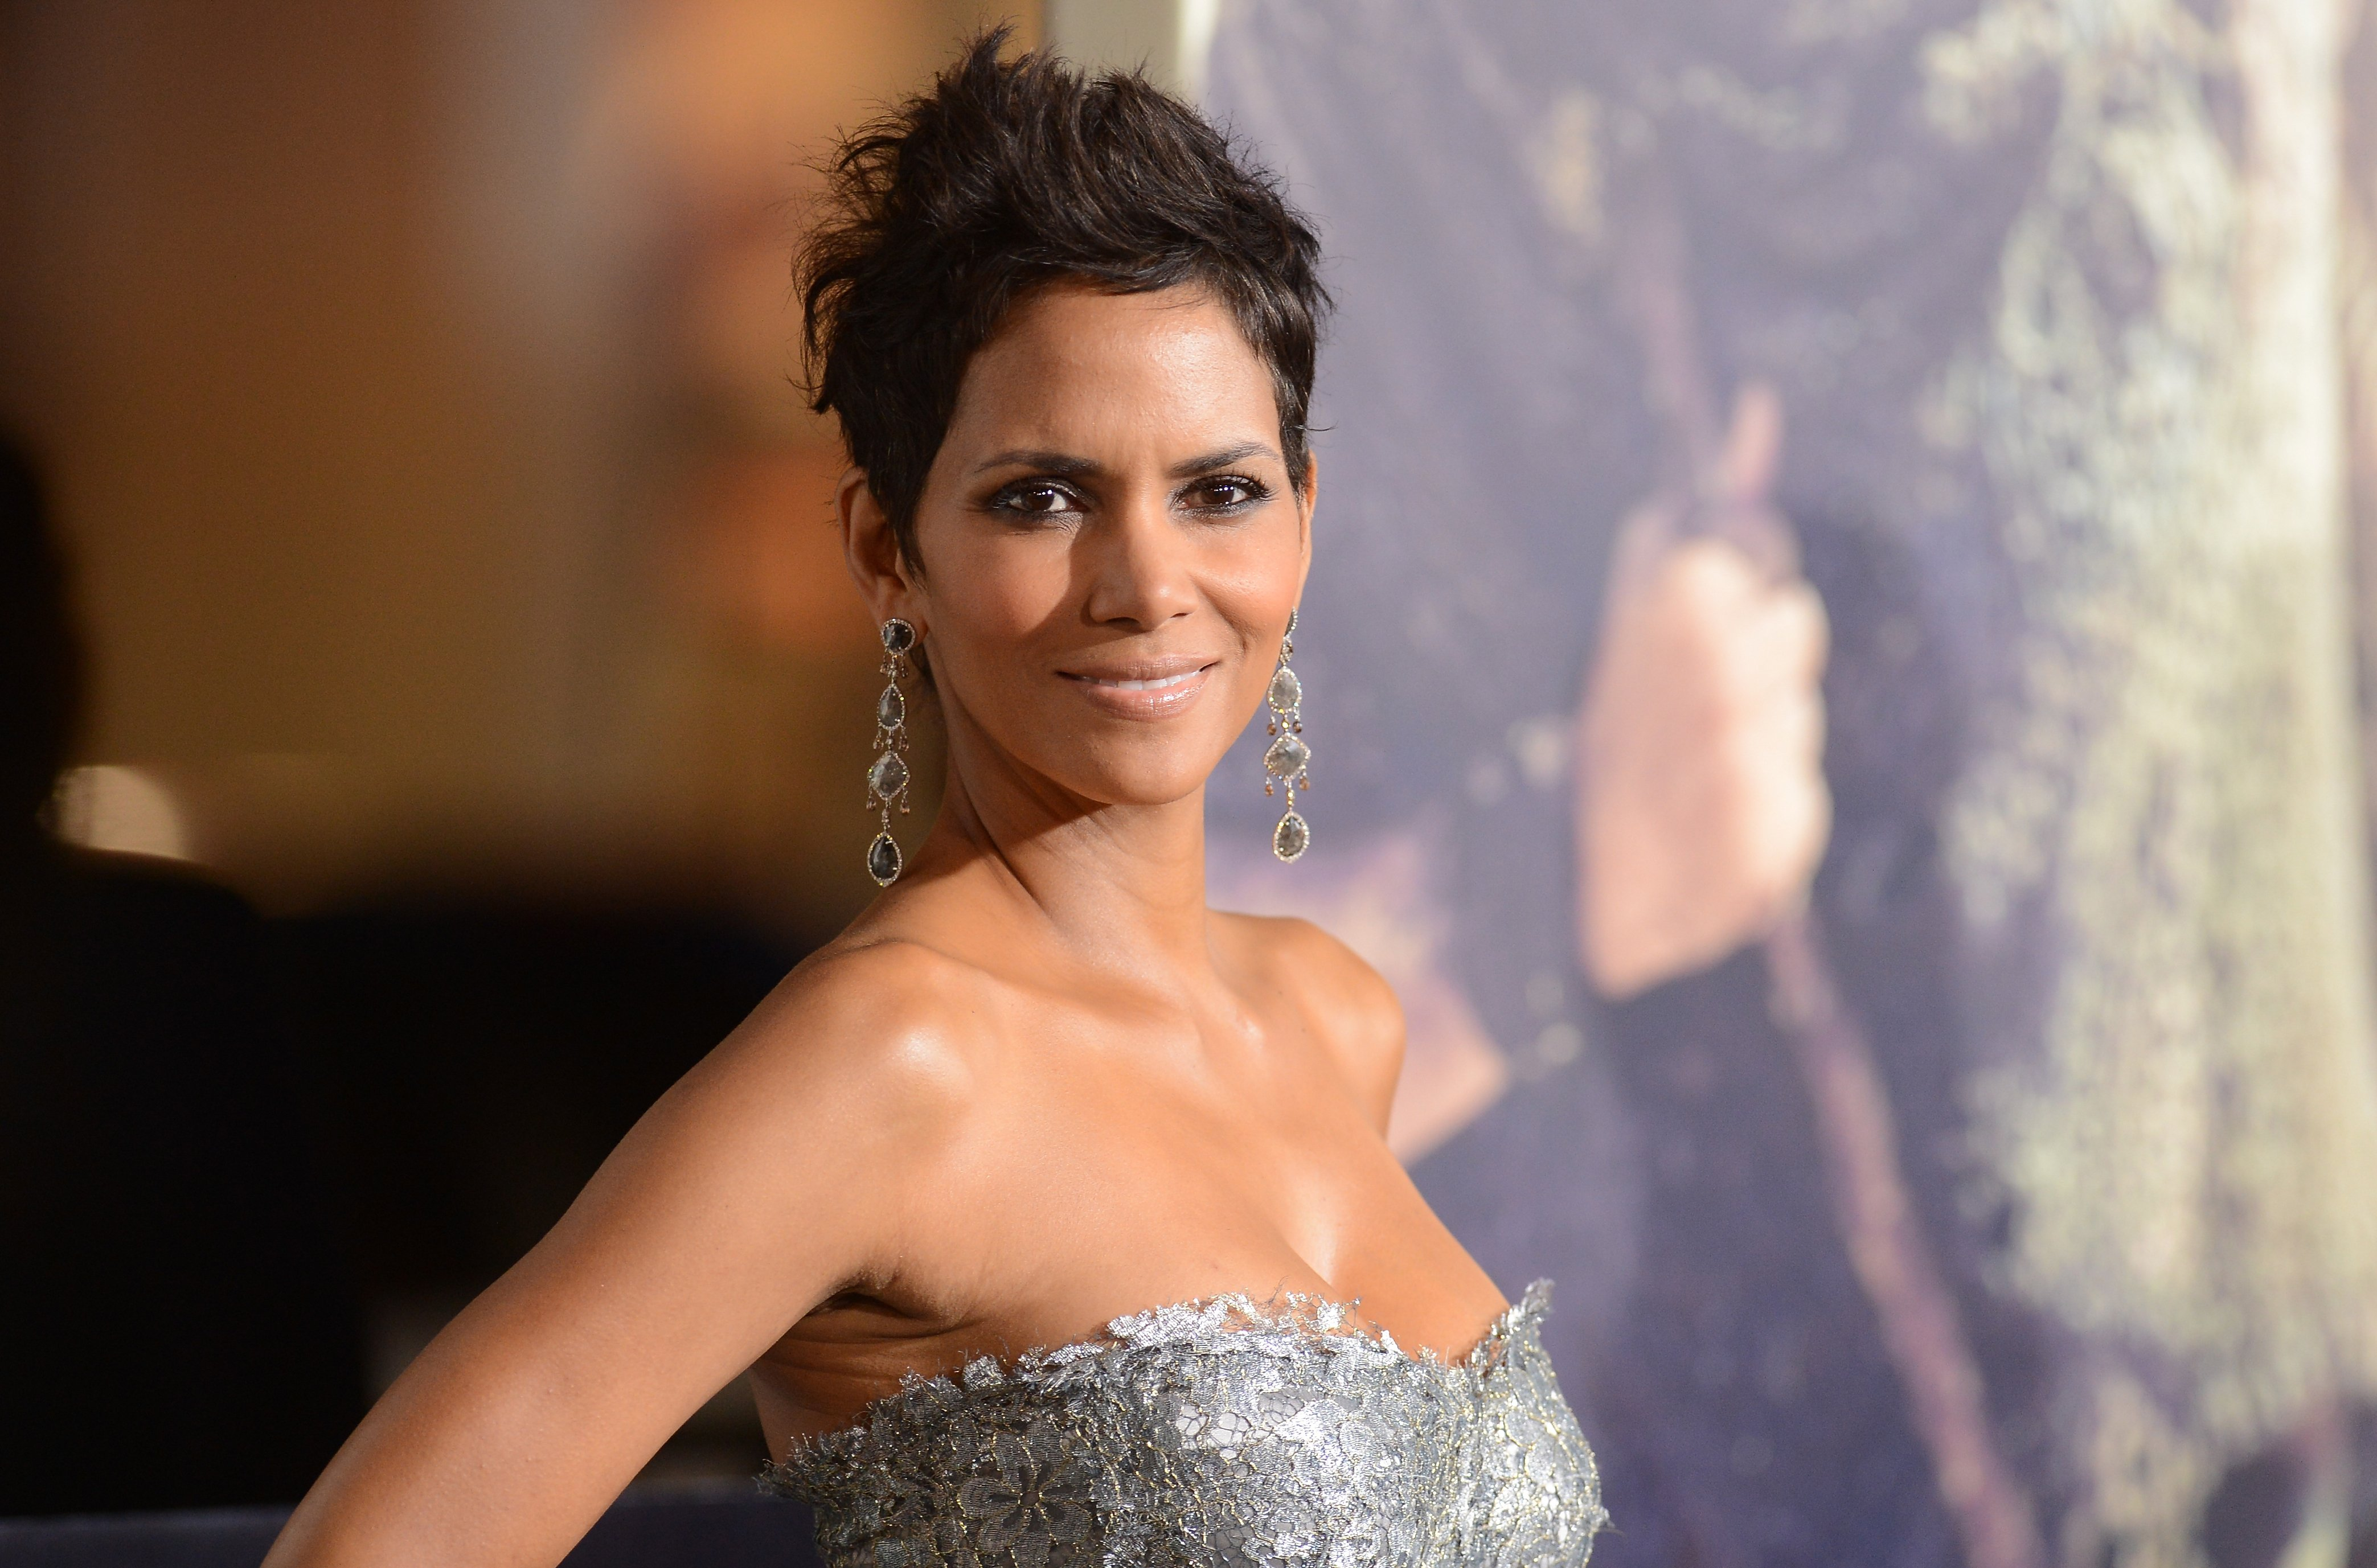 Halle Berry at the 'Cloud Atlas' premiere in Hollywood, California, 2012 | Source: Getty Images